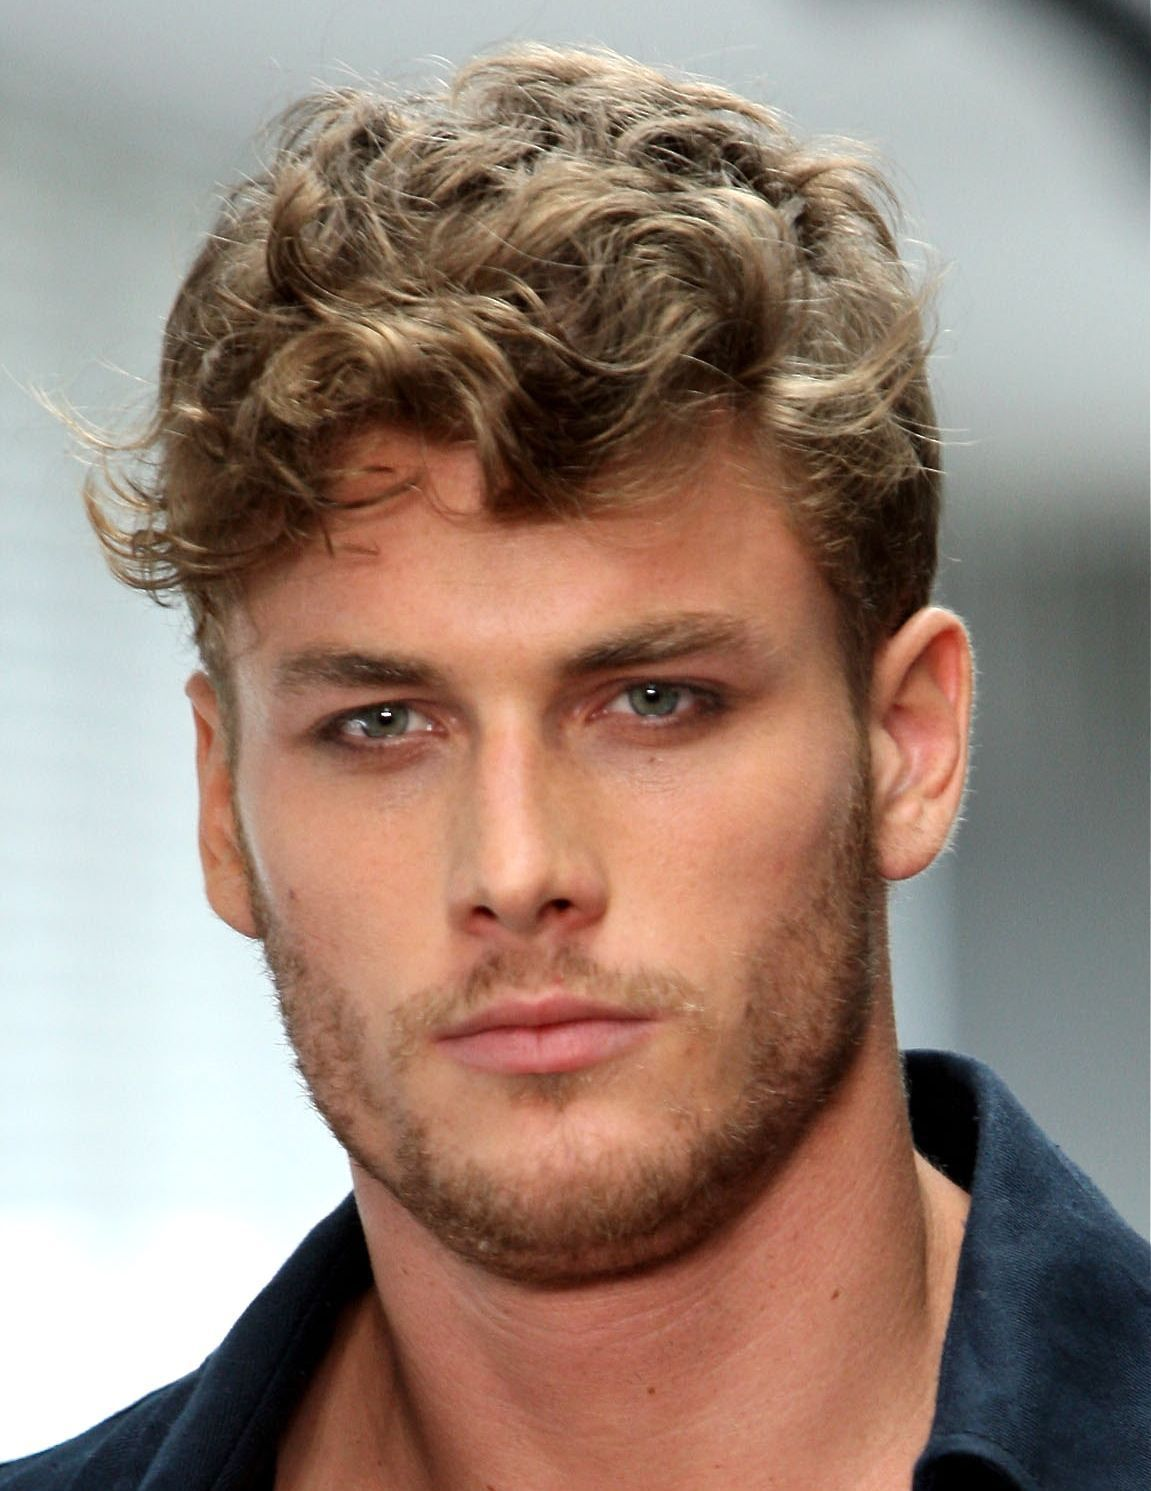 Magnificent 1000 Images About Haircuts For Men On Pinterest Men Curly Short Hairstyles Gunalazisus